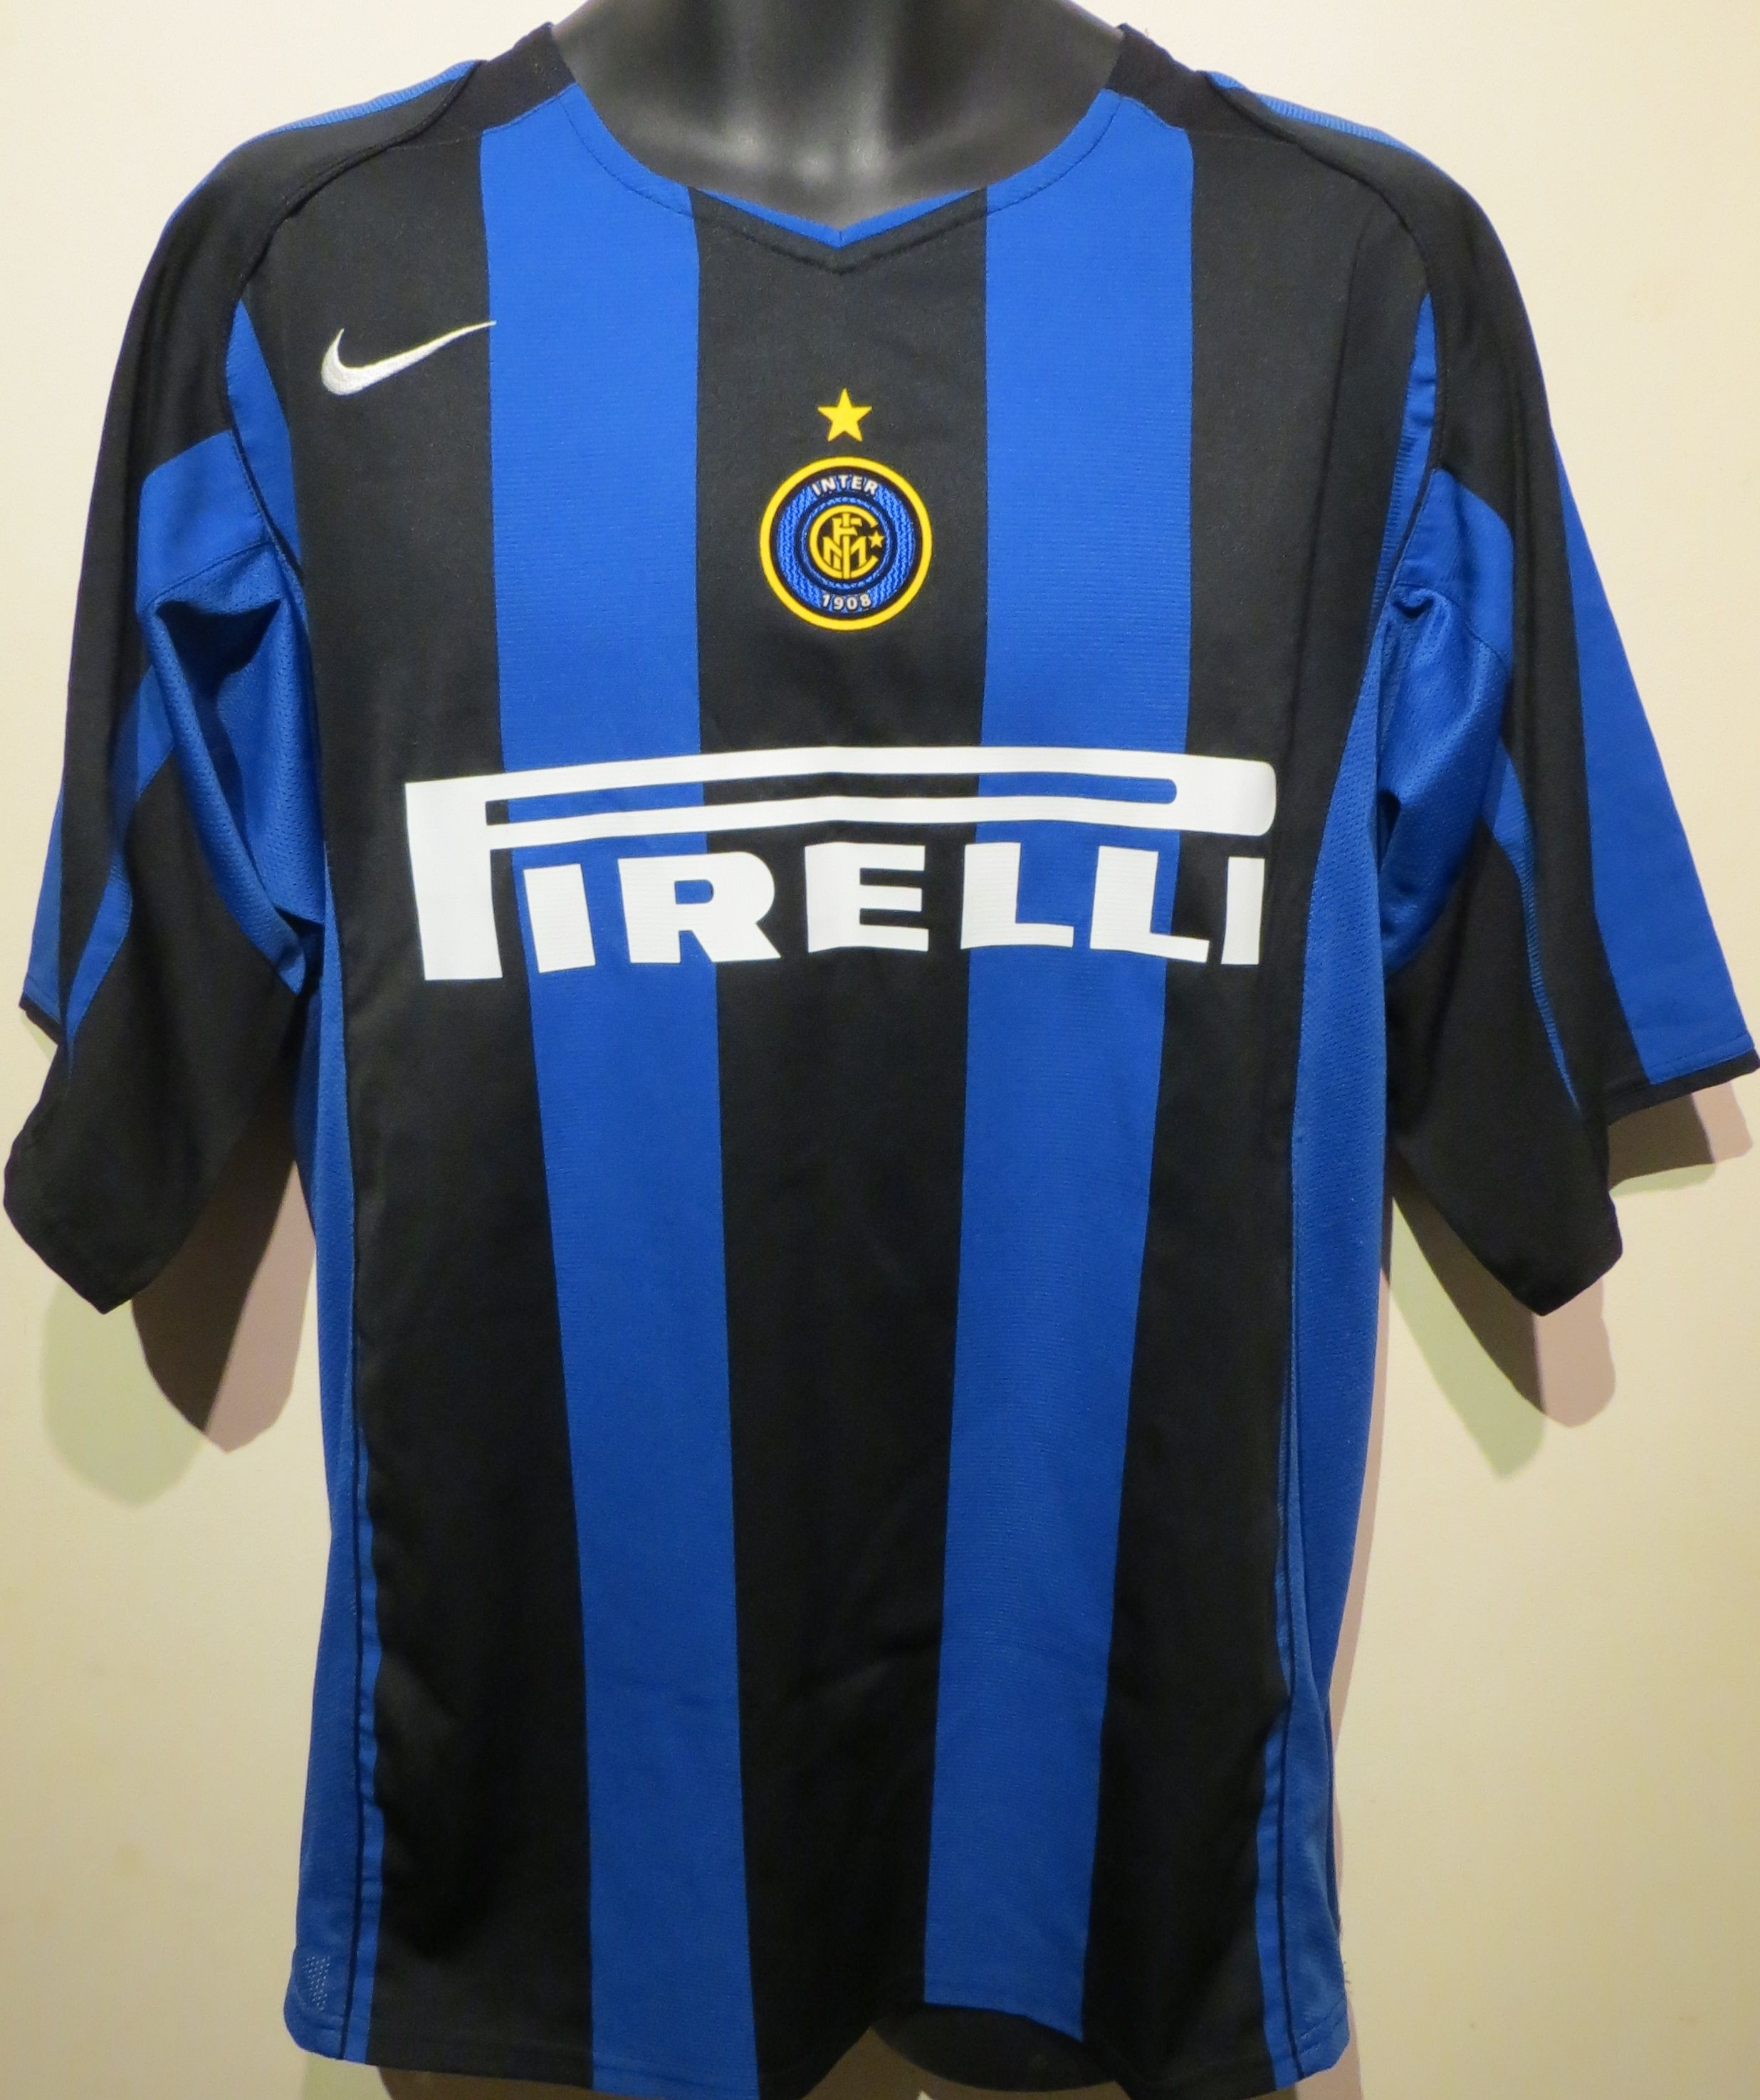 168191a3267 Adriano Inter Milan Shirt by Nike (front). Find this Pin and more on Retro  Football ...